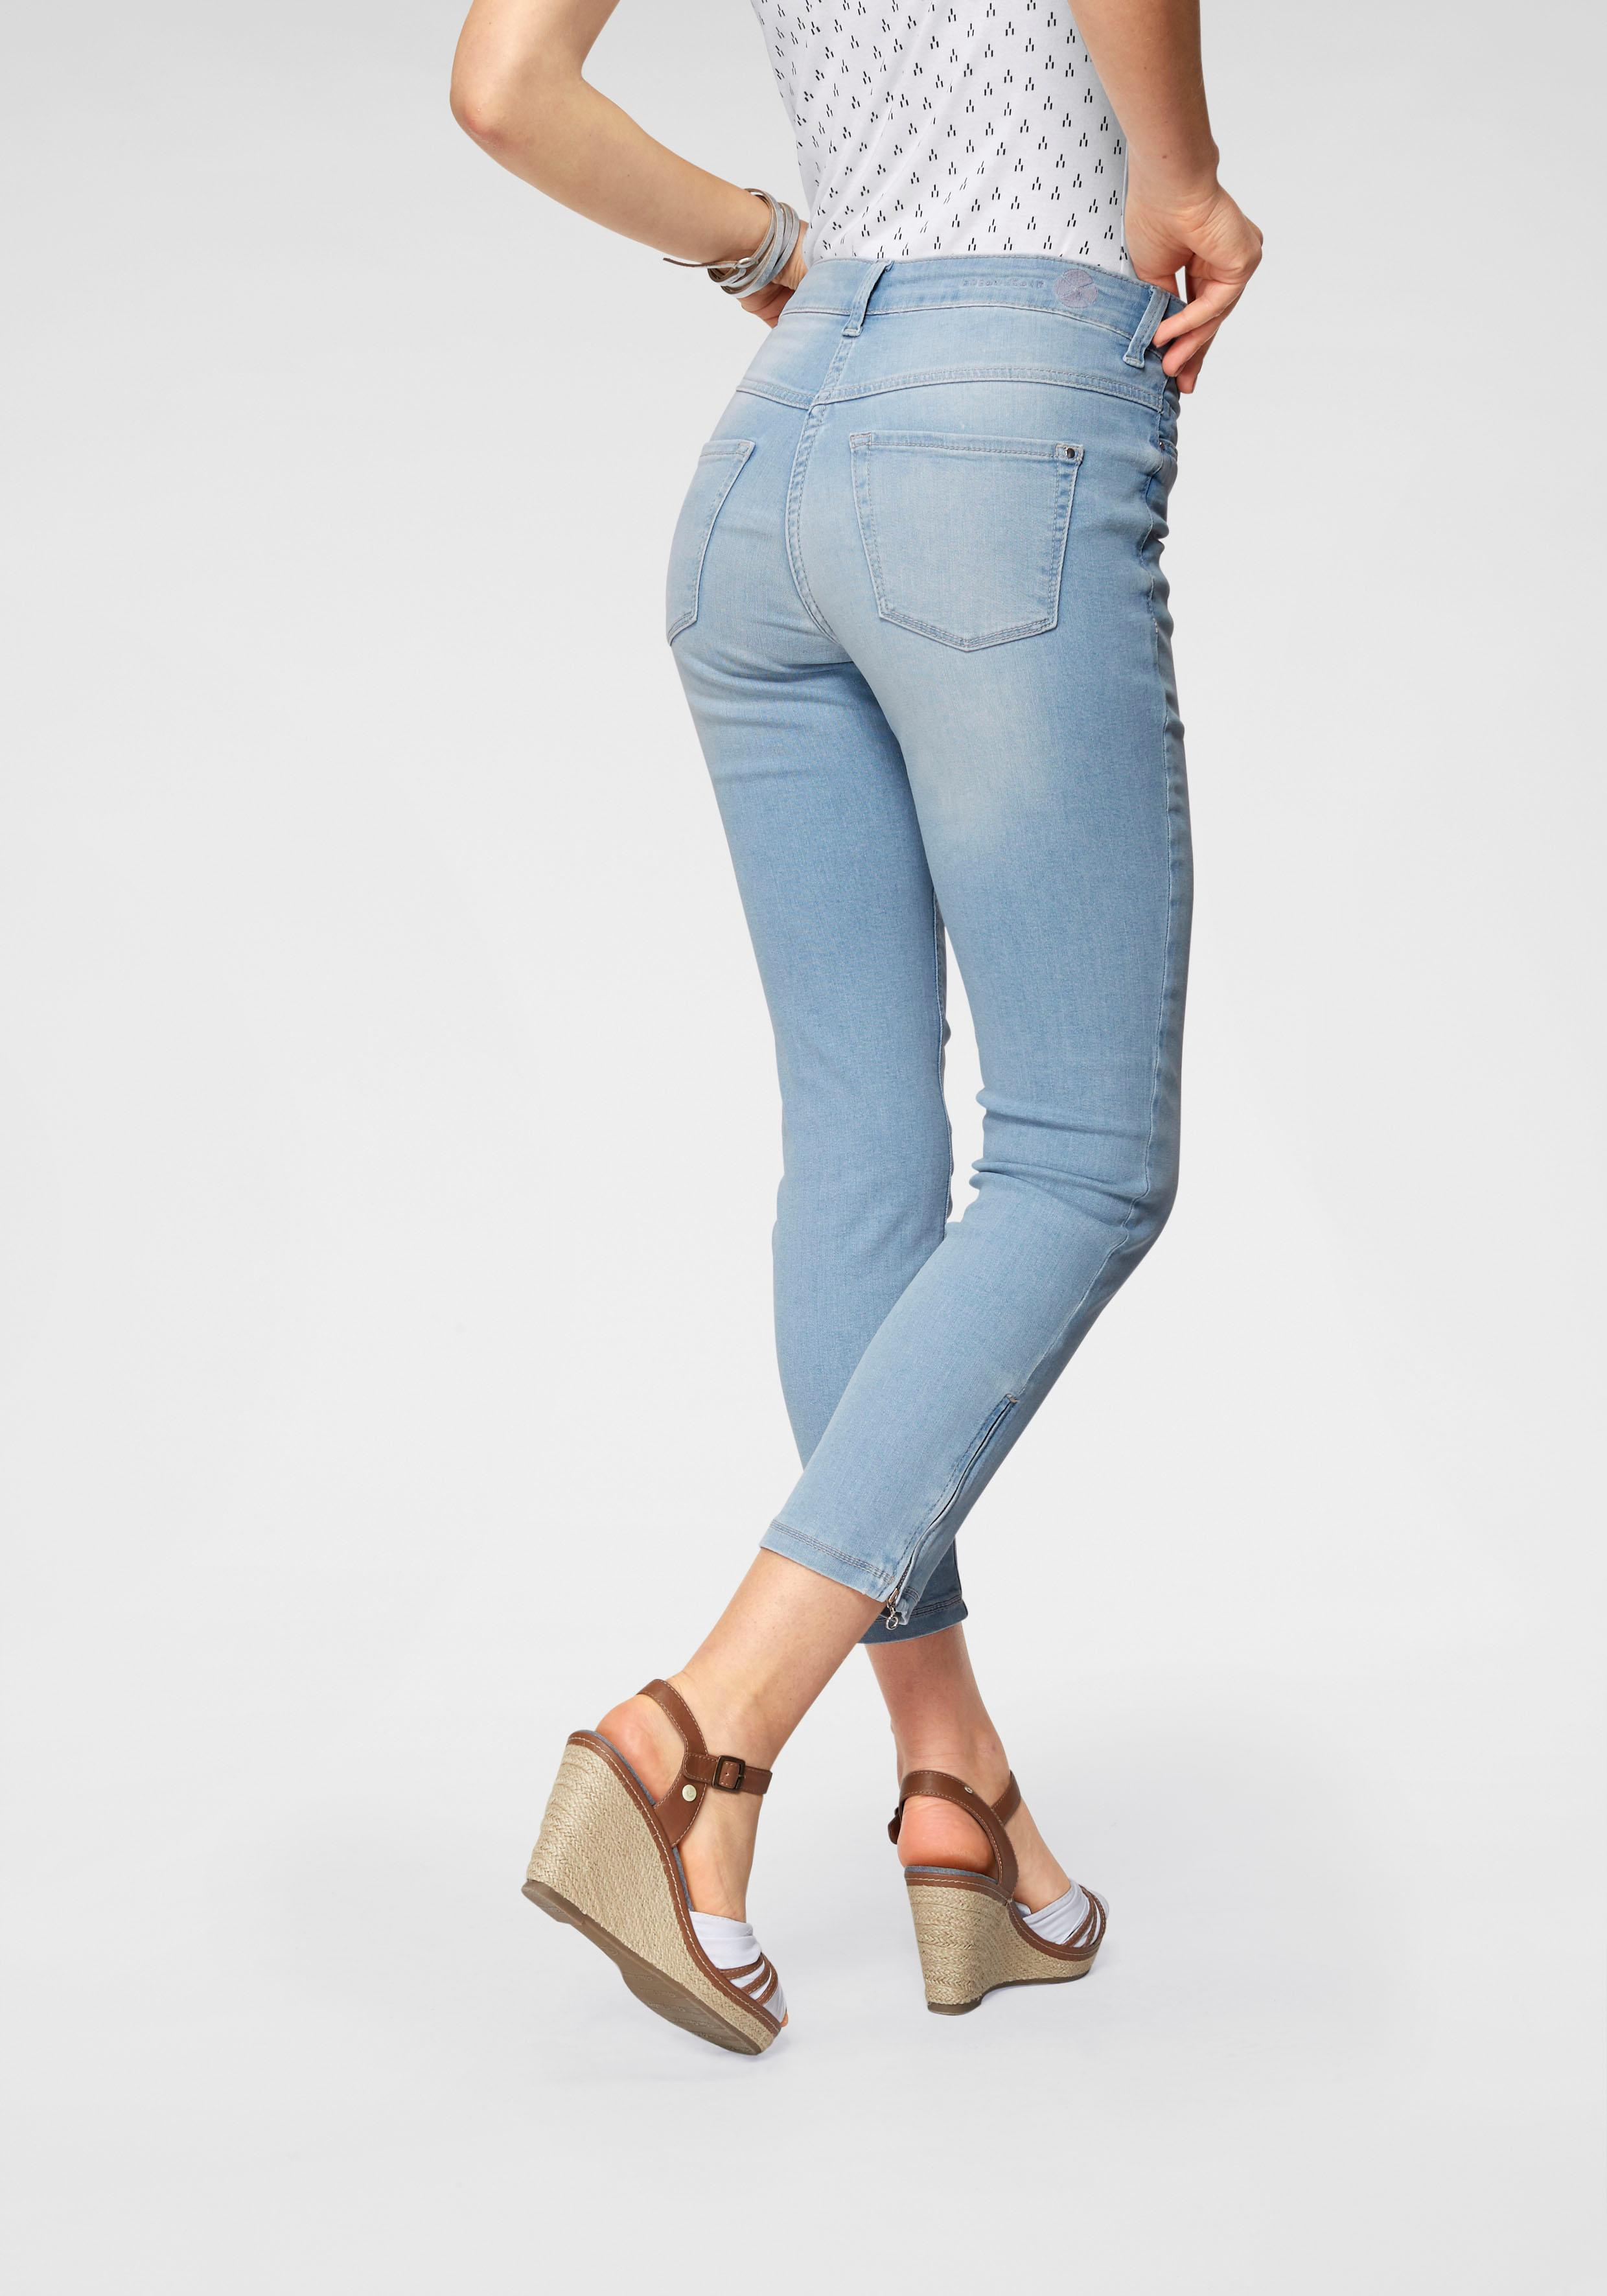 MAC 7/8-Jeans Dream Chic | Bekleidung > Jeans > 7/8-Jeans | Mac